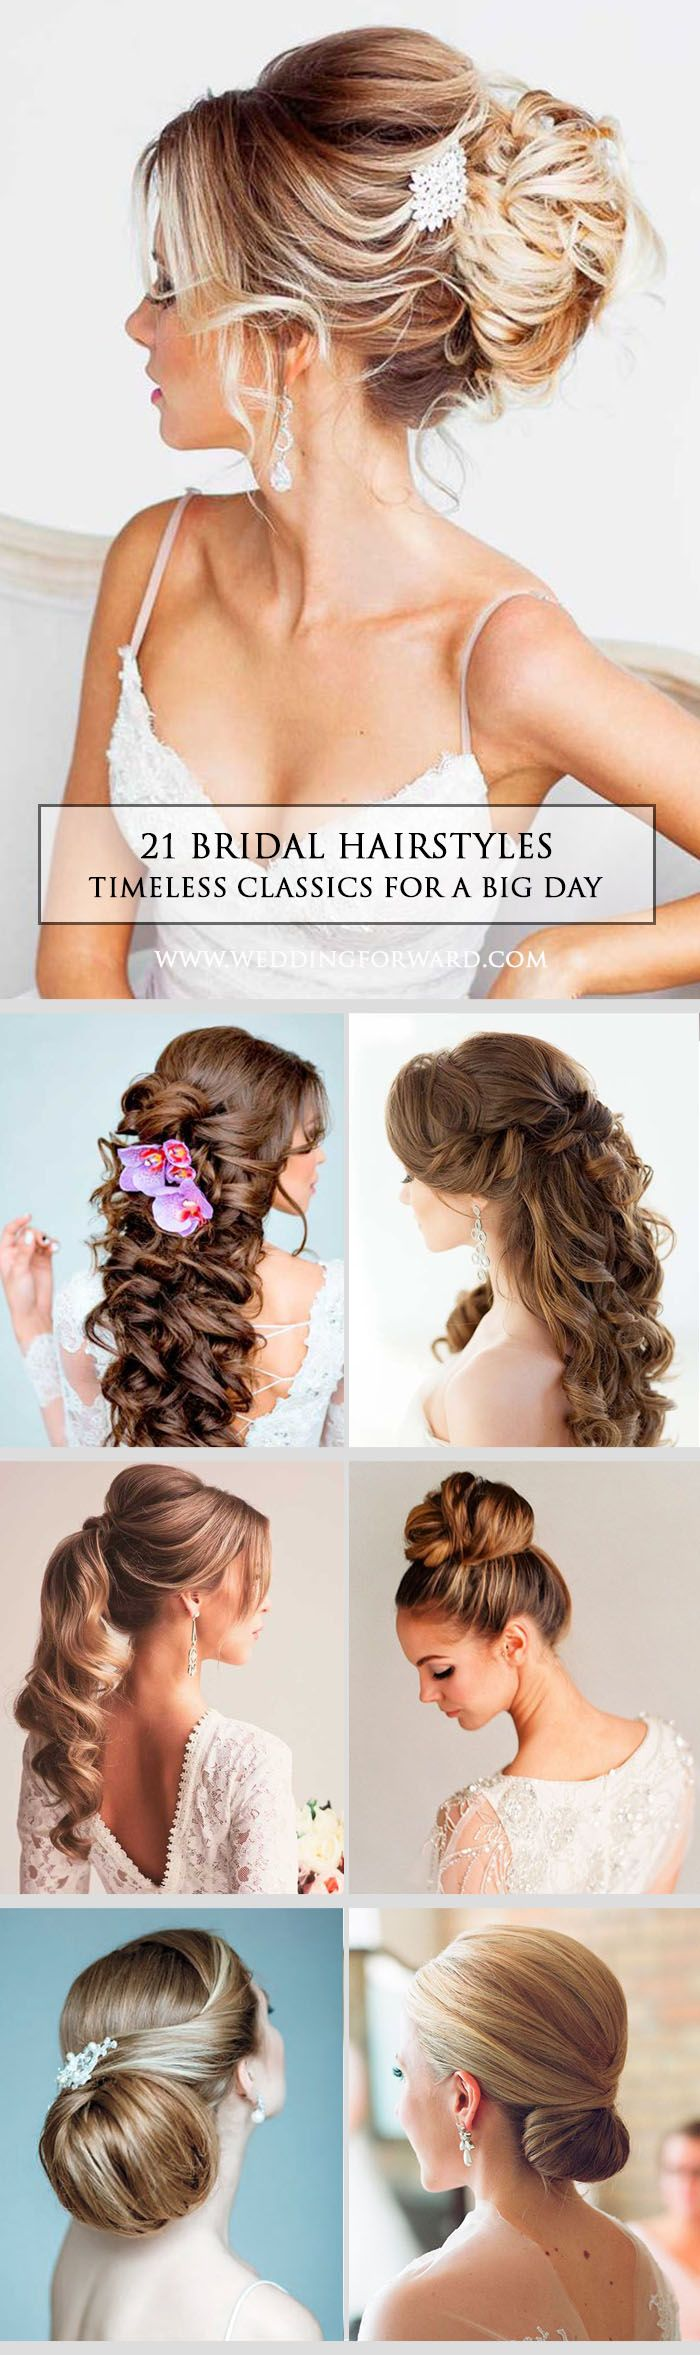 21 Timeless Bridal Hairstyles ❤ If you're still looking for a great hairstyle for your wedding, take a moment to consider these wonderfully simple and elegant styles that might just catch your fancy. See more: http://www.weddingforward.com/timeless-bridal-hairstyles/ #weddings #hairstyles